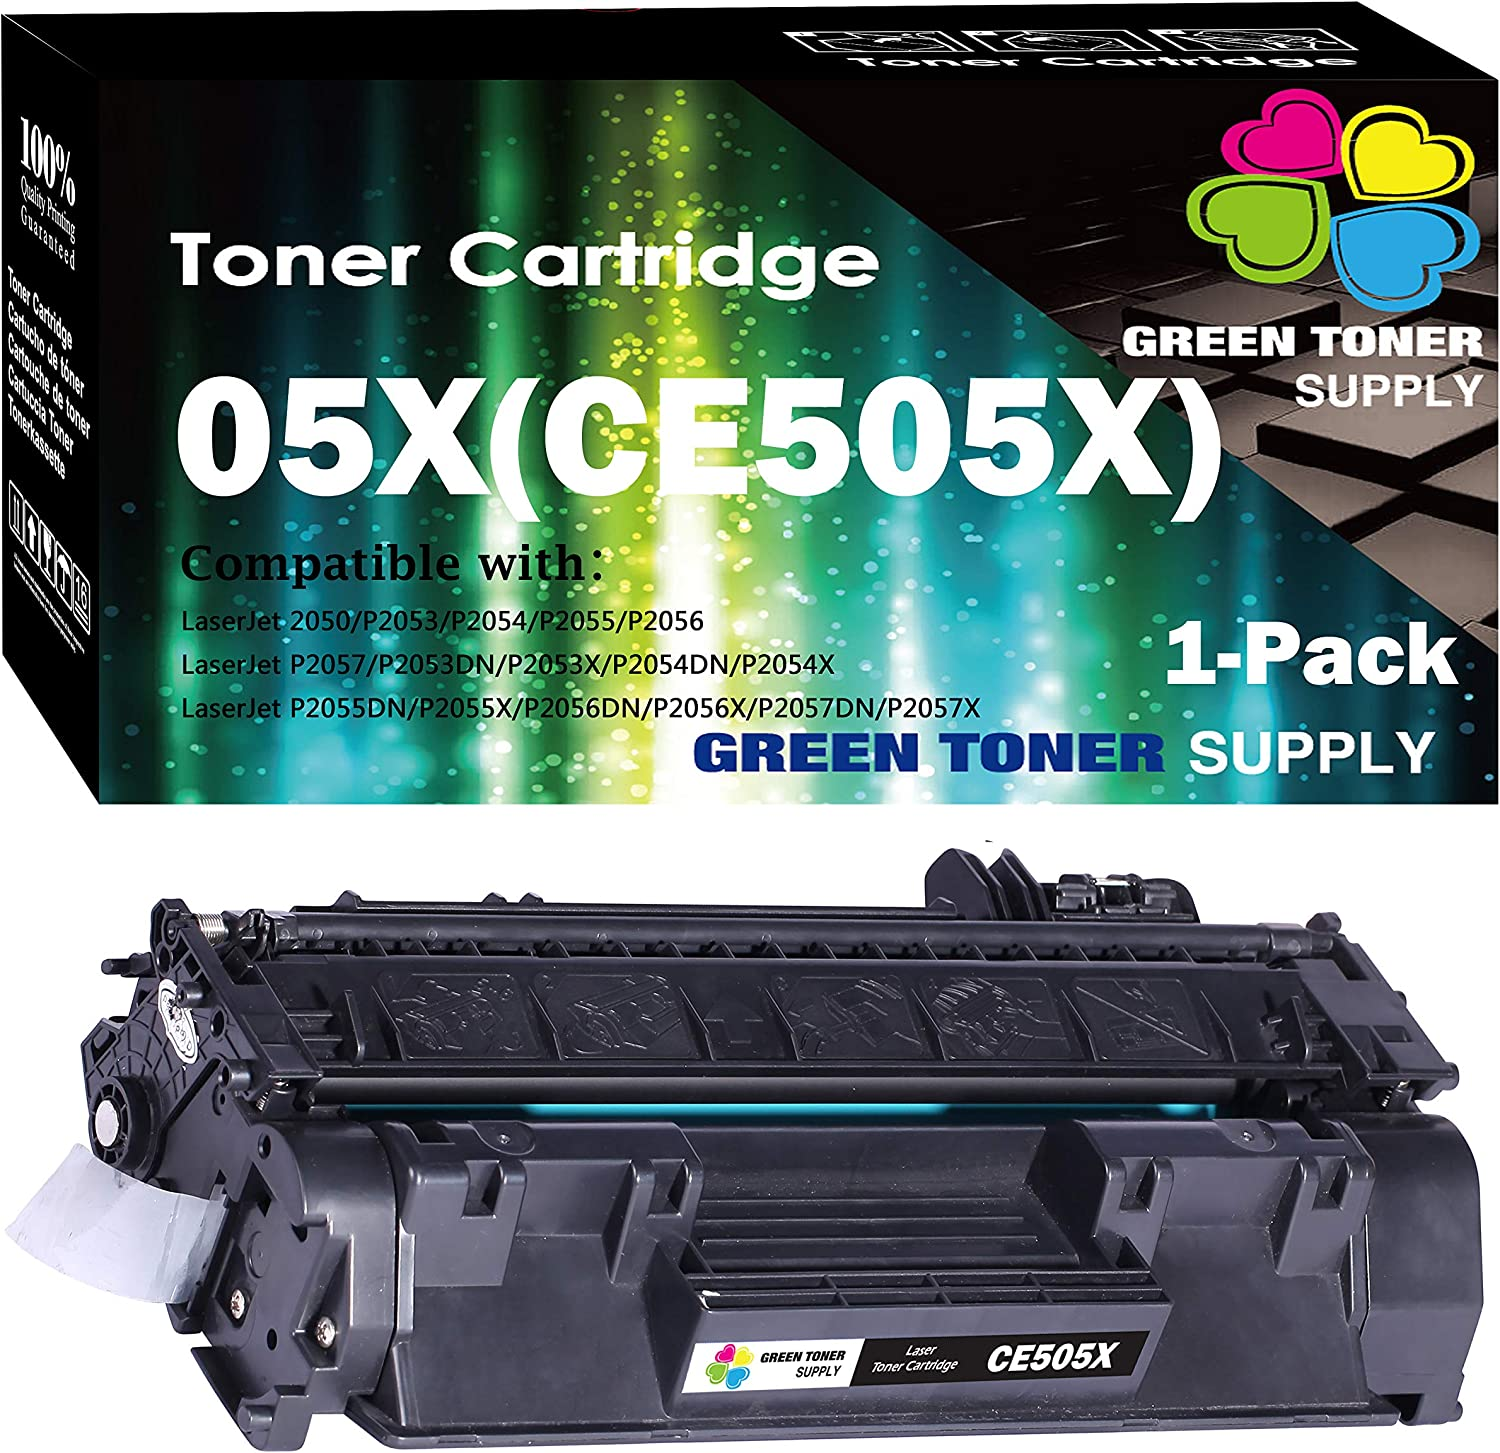 (1-Pack) Compatible 05X CE505X Toner Cartridge 505X Used HP Laserjet P2055dn P2055 P2055D P2055X Pro 400 Pro 400 M401n M401dne M401dw MFP M425dn Printer, by GTS